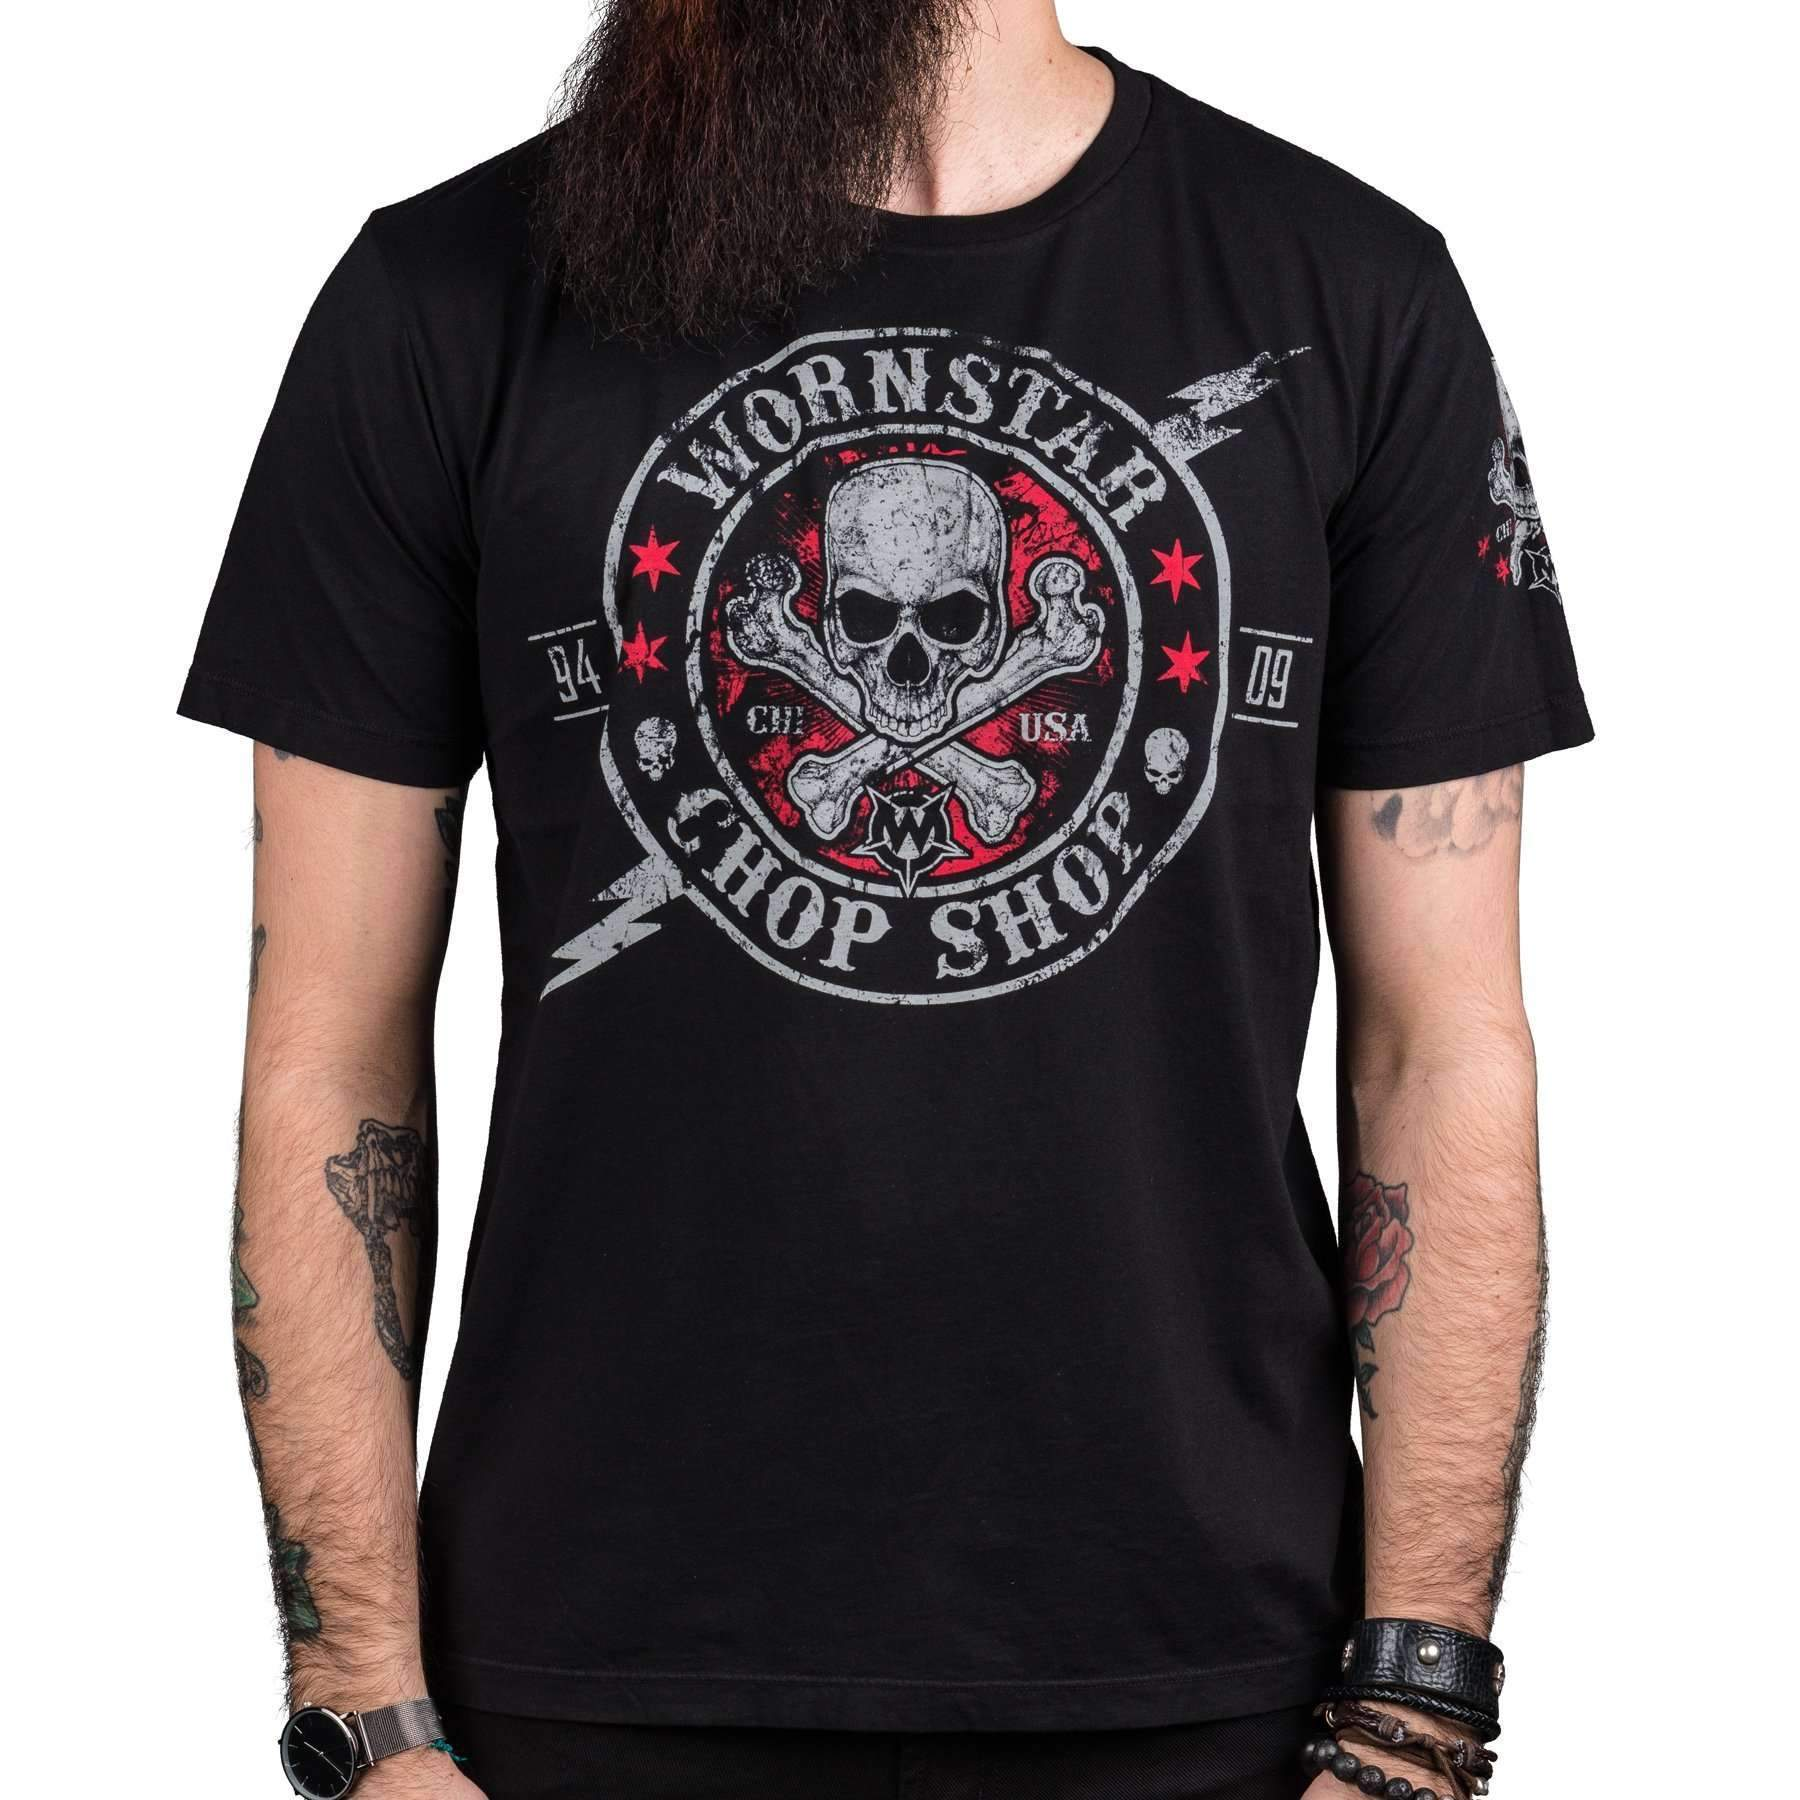 Wornstar Electric T-Shirt